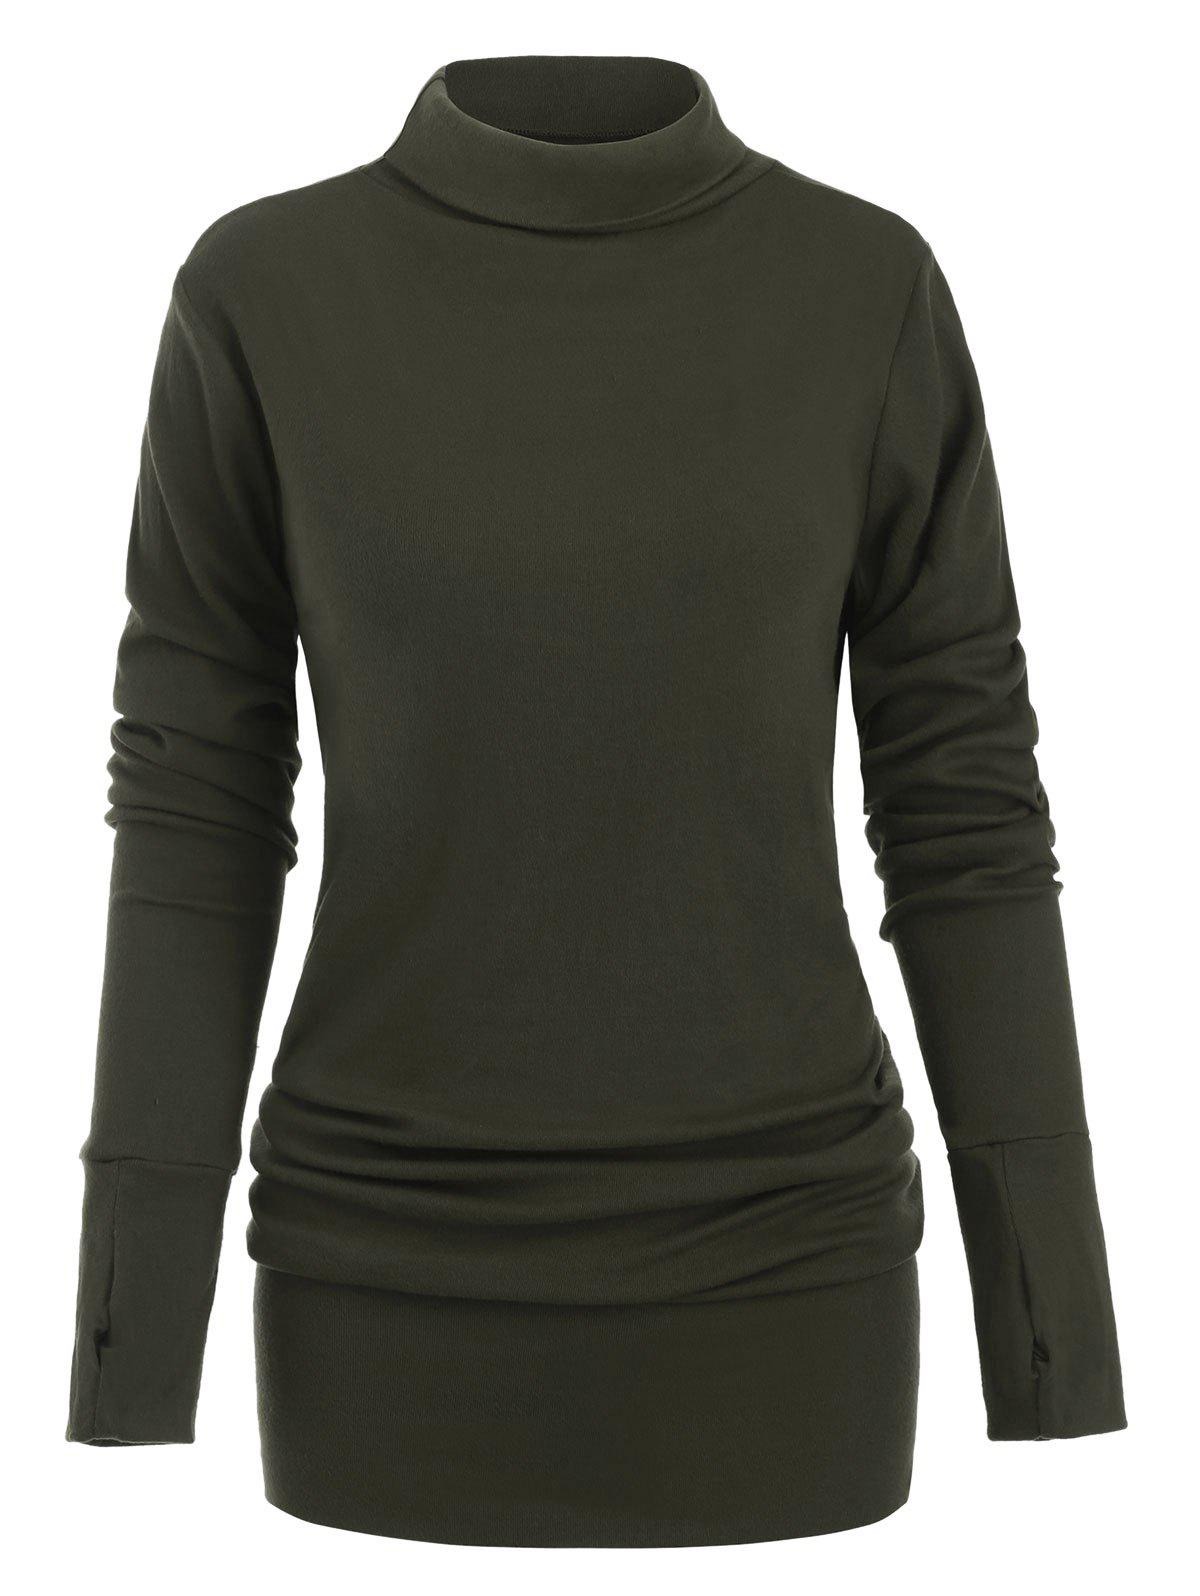 Chic Turtleneck Long Sleeves Solid Shift Dress